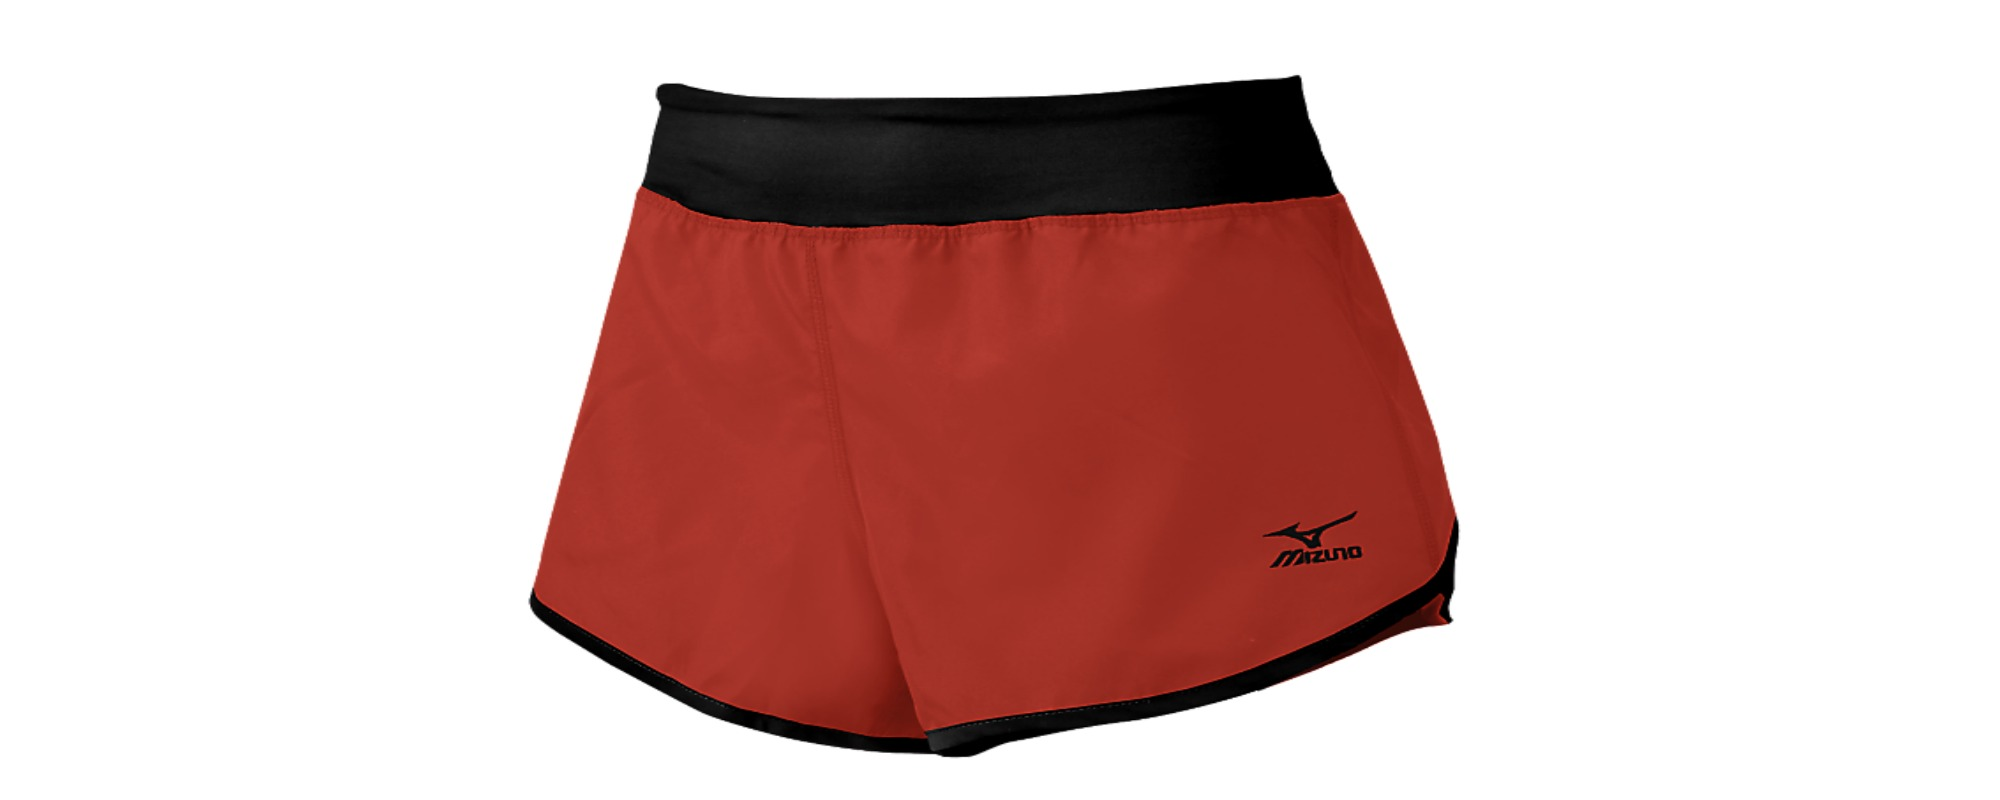 Mizuno_cover_Up_Short_Banner.jpg